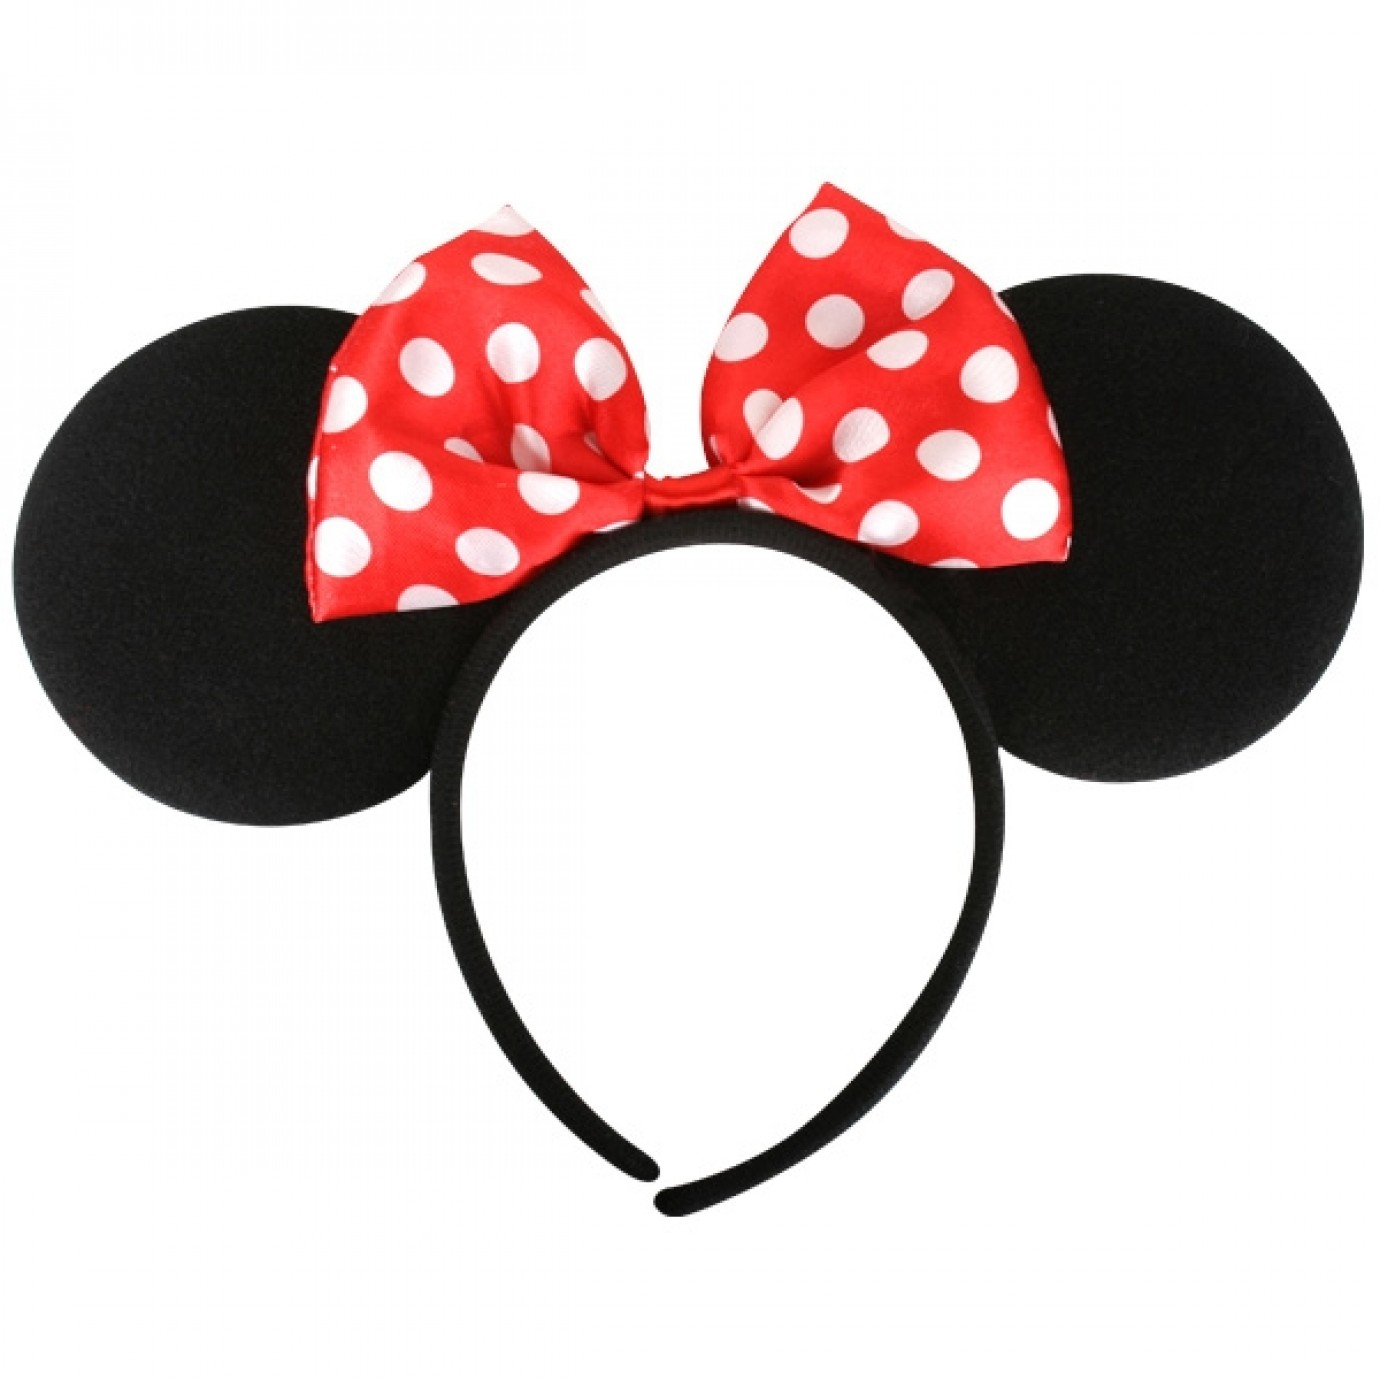 Minnie Mouse Ears, Red Bow | Disney | Fancy Dress Costumes | Party Shop